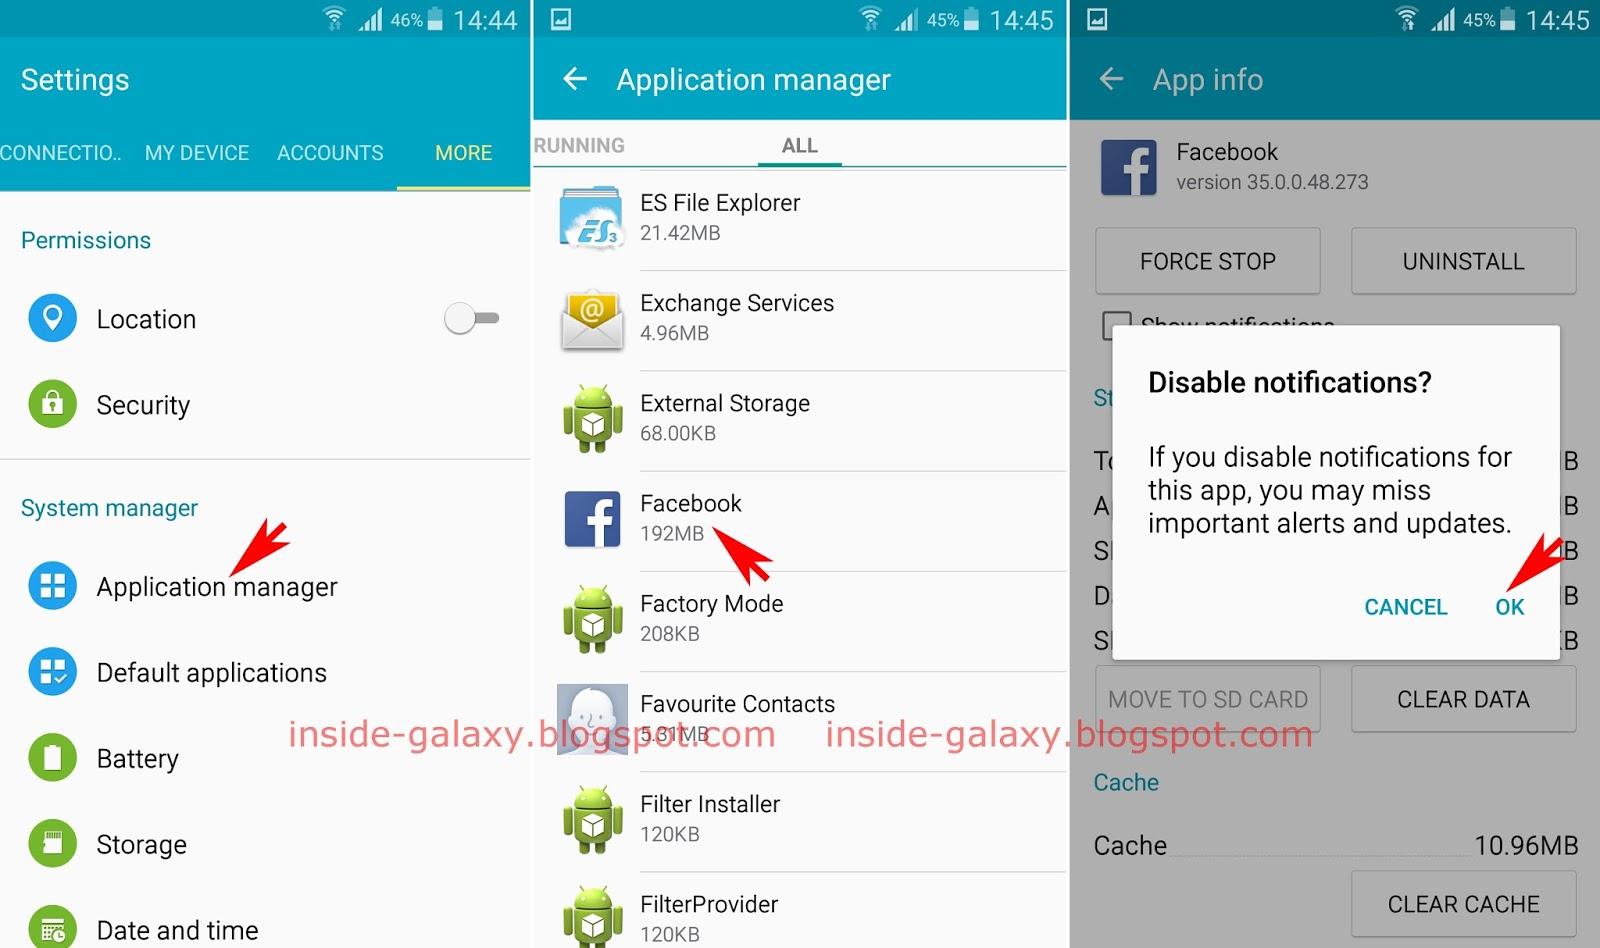 Samsung galaxy s4 how to block application notifications in android method 1 from the app manager menu publicscrutiny Choice Image